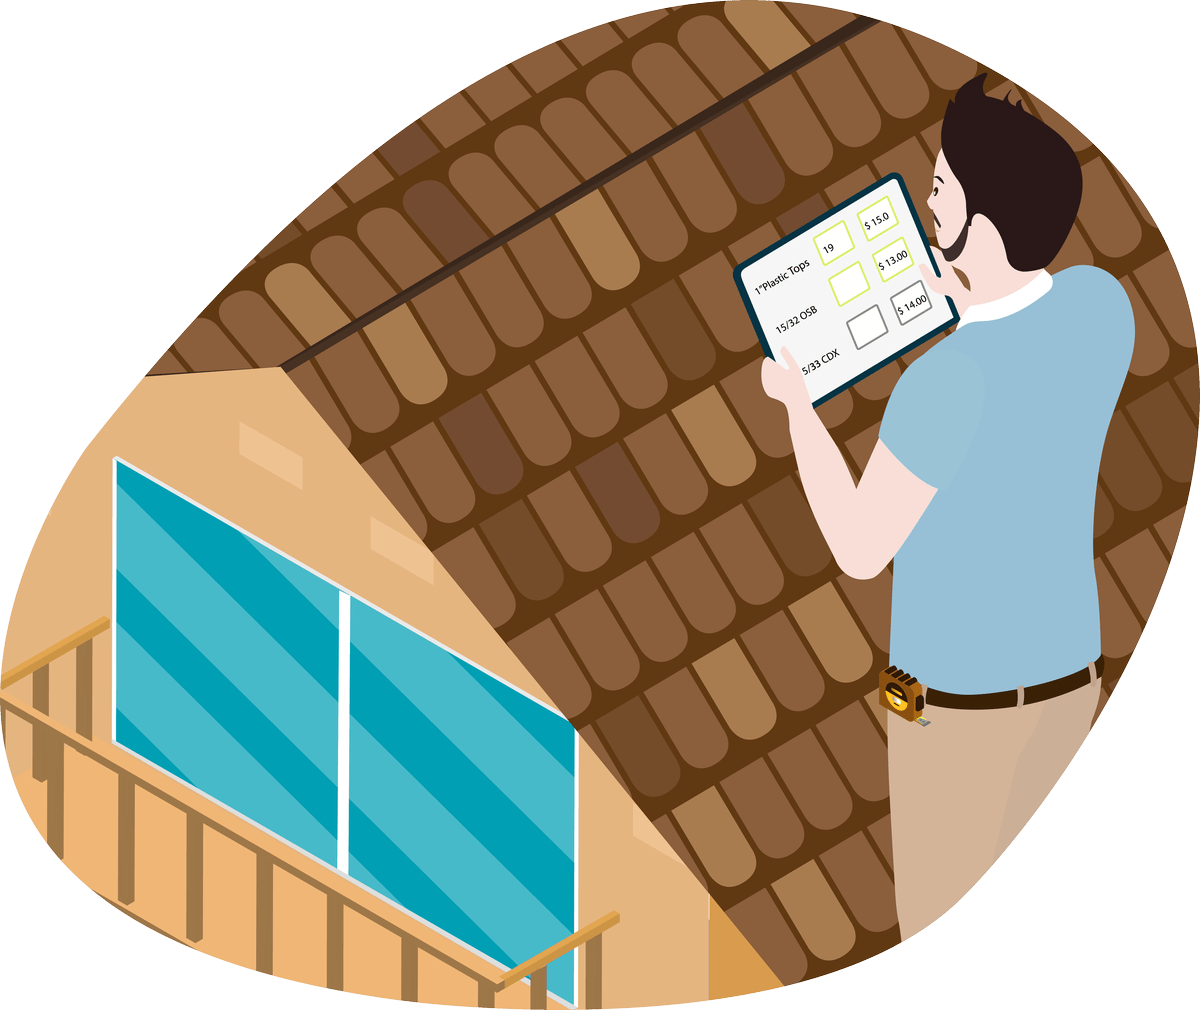 roofing crm software